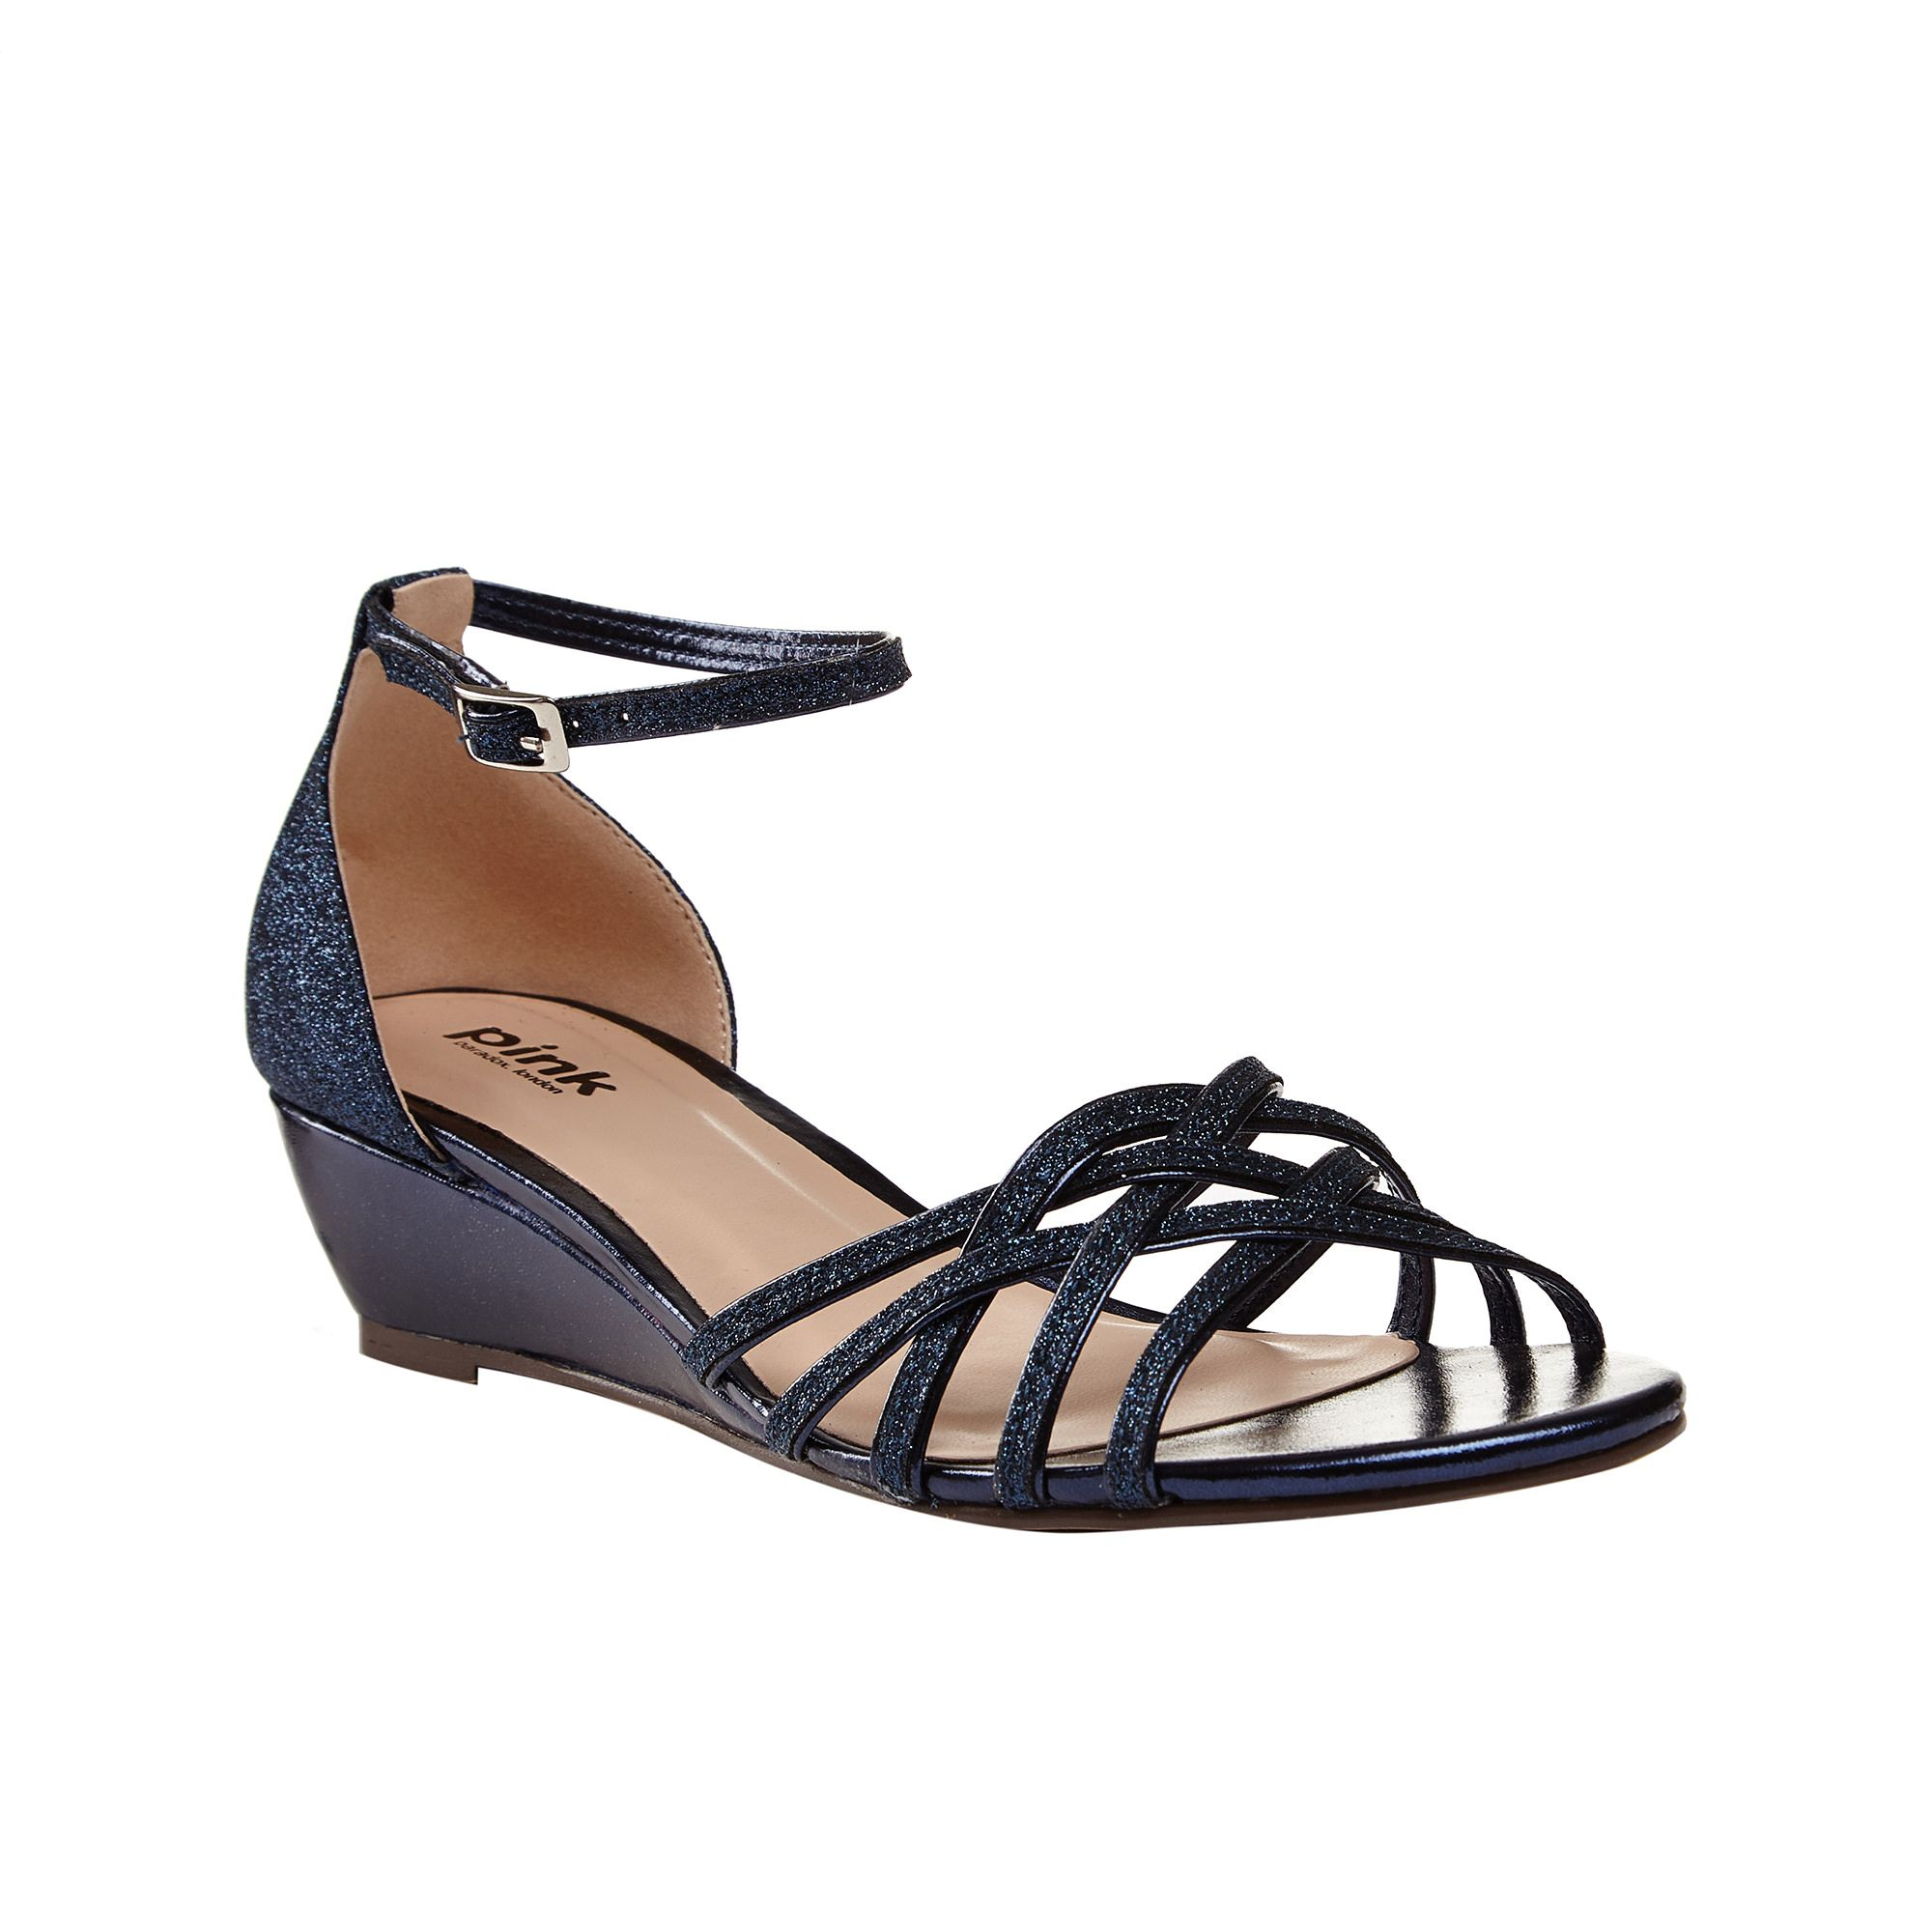 Paradox London Pink Paradox London Pink Avery strappy glitter wedge sandals, Navy